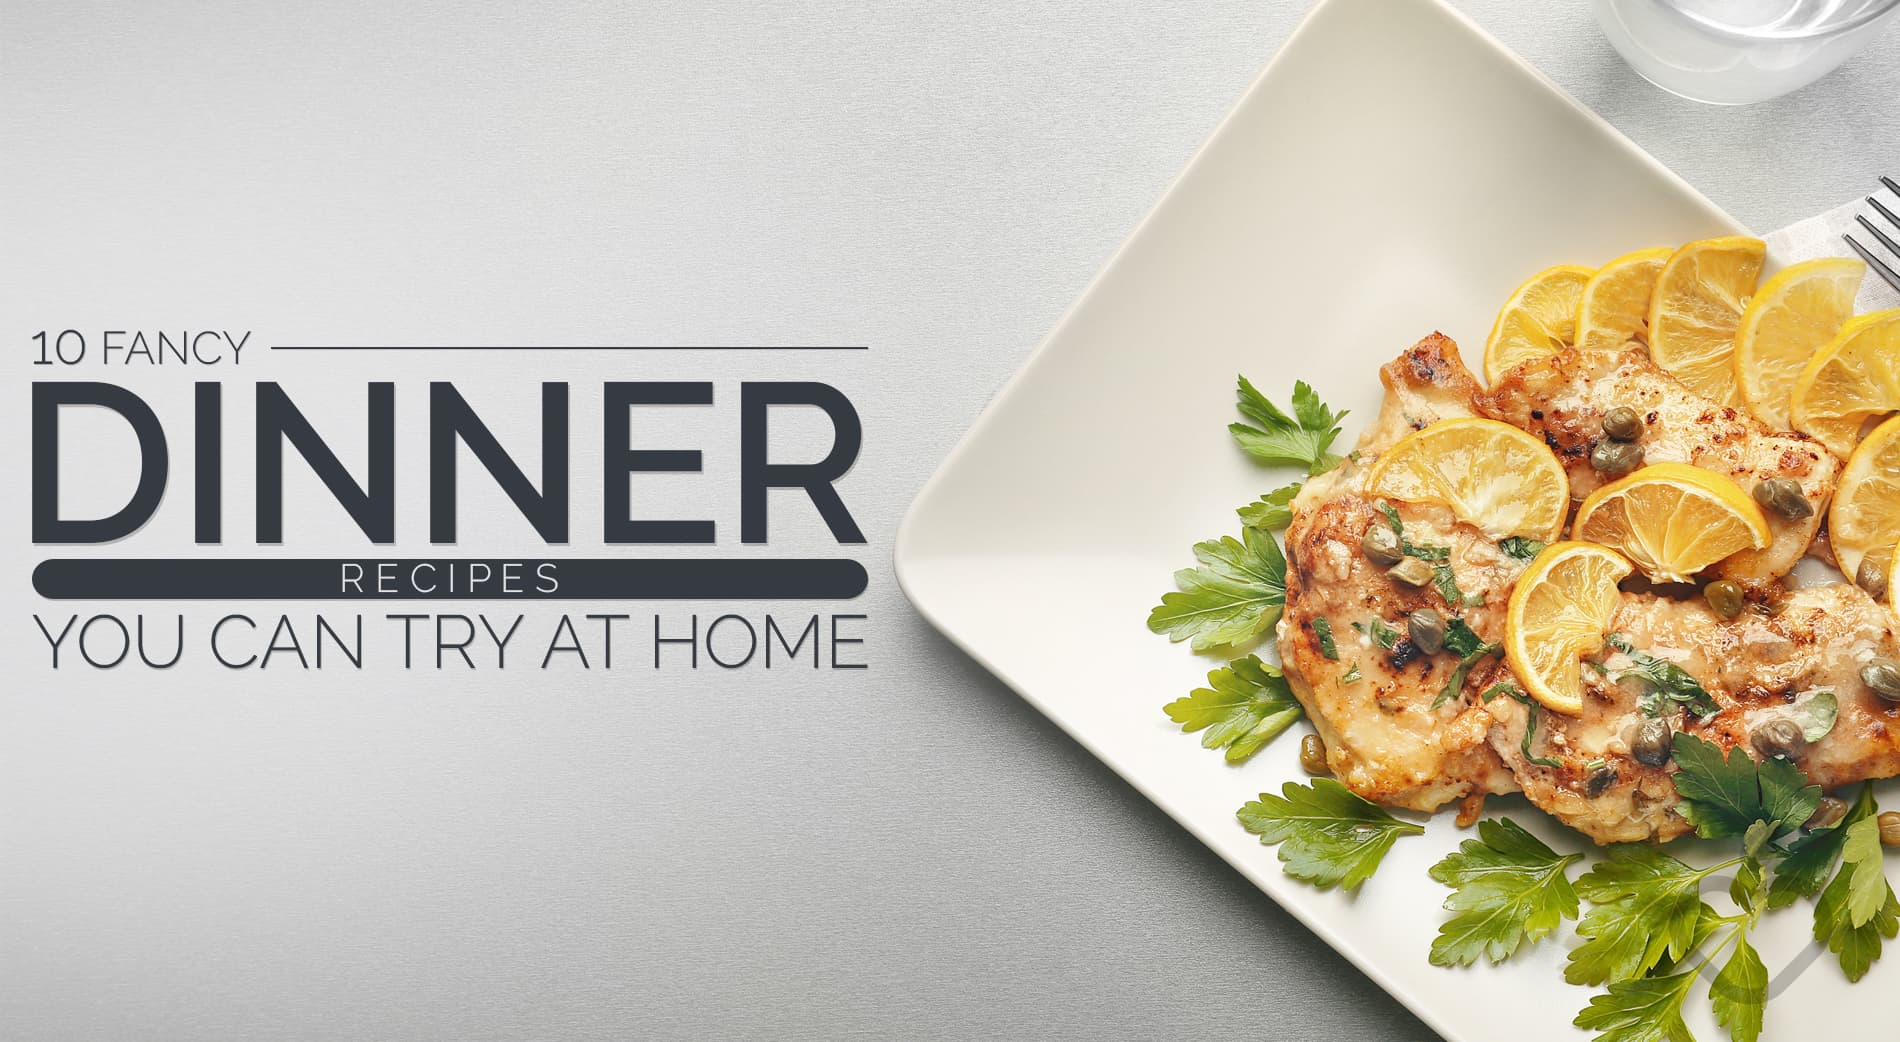 10 fancy dinner recipes you can try at home naturacology for Fancy at home dinners